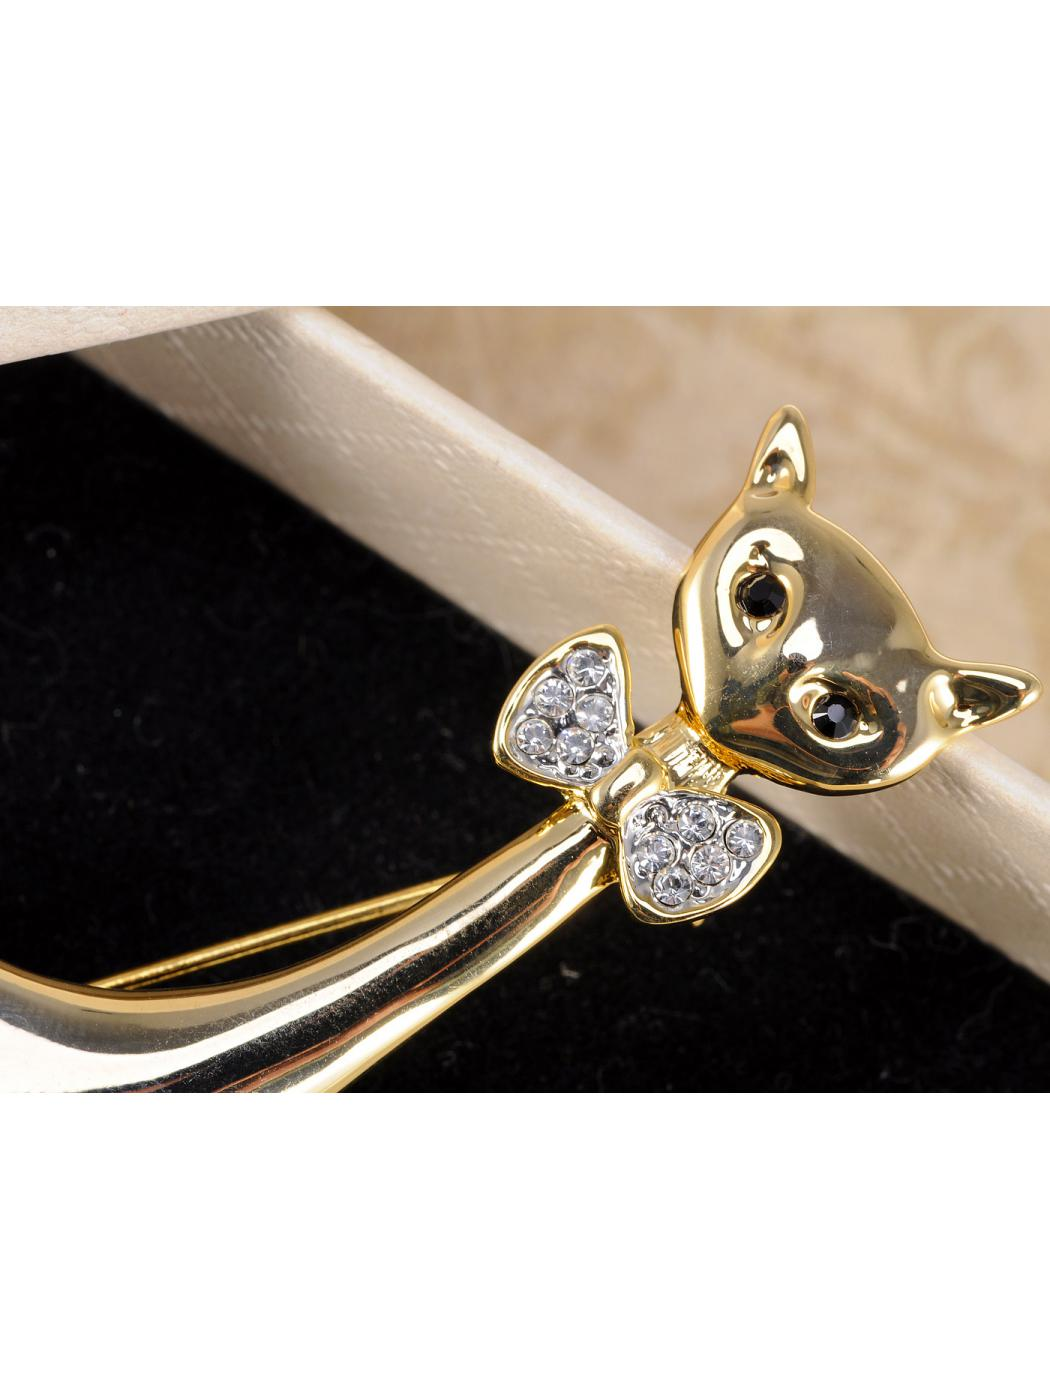 Lady Bow Tie Dressed Golden Smile Halloween Kitty Sitting Diamante Brooch Pin